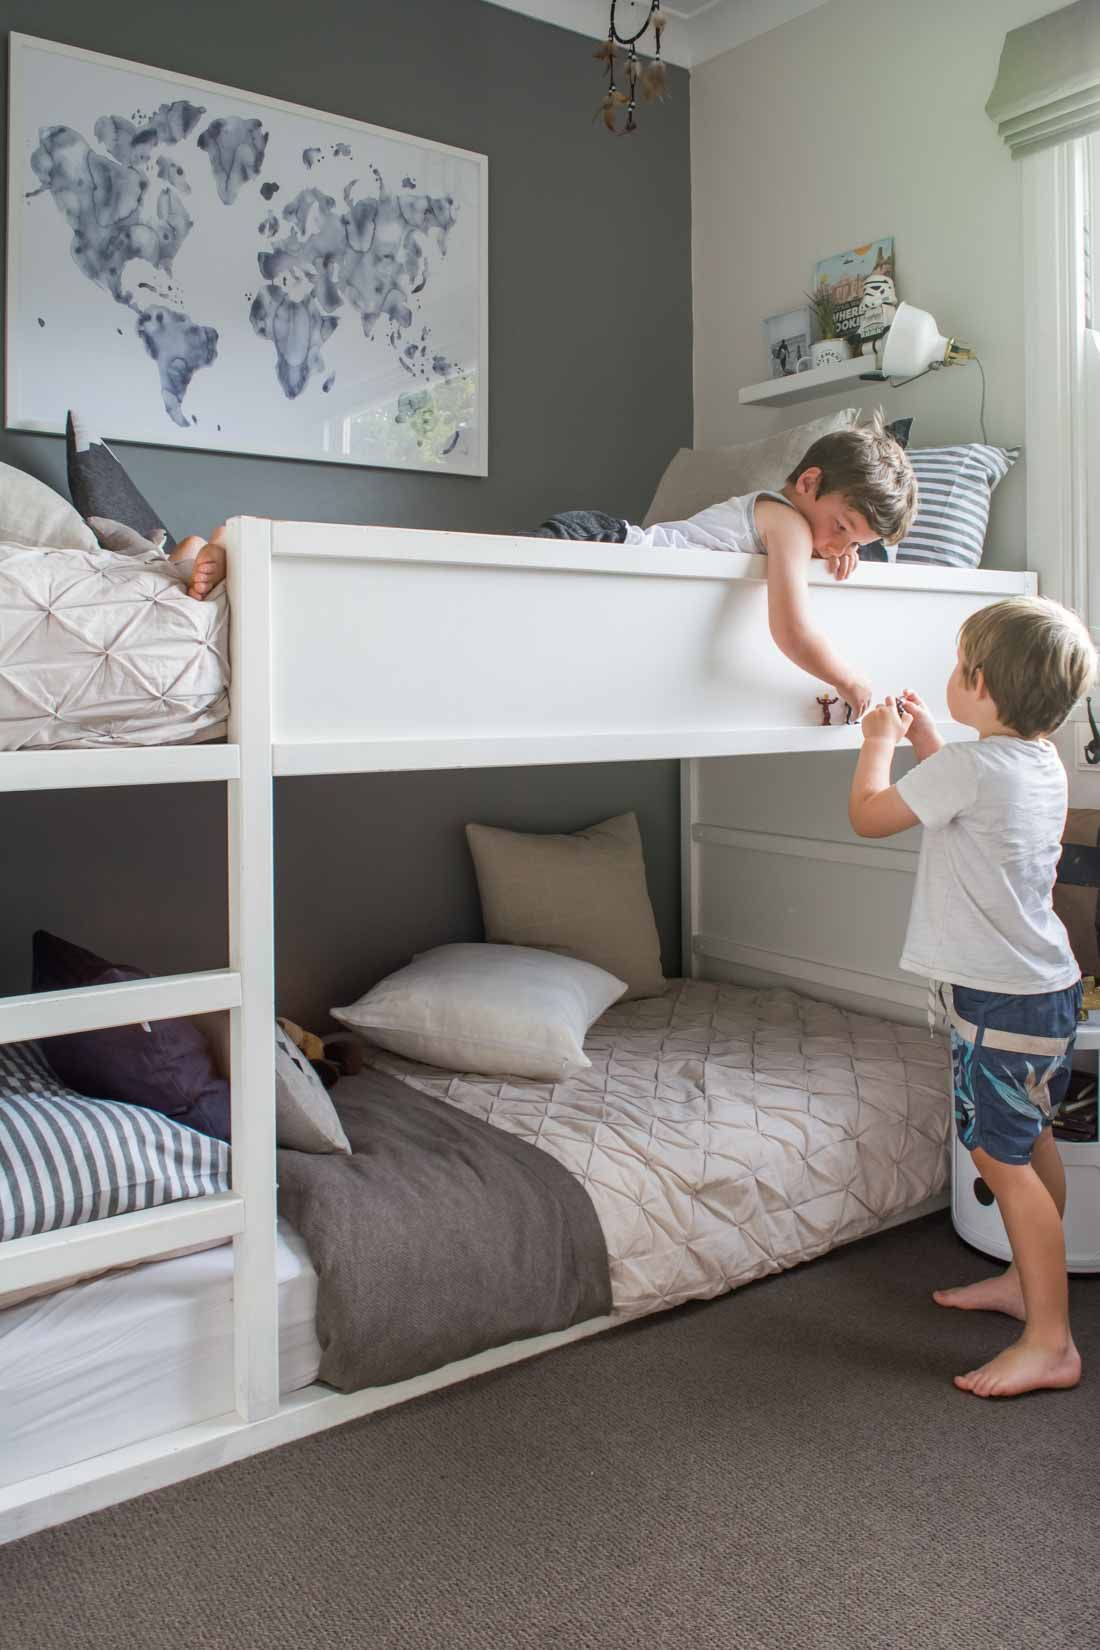 Sharing Some Thoughts On This Room Designed For My Two Youngest And How It Came Together With The Edito Shared Boys Rooms Boys Bedrooms Boys Room Ideas Shared